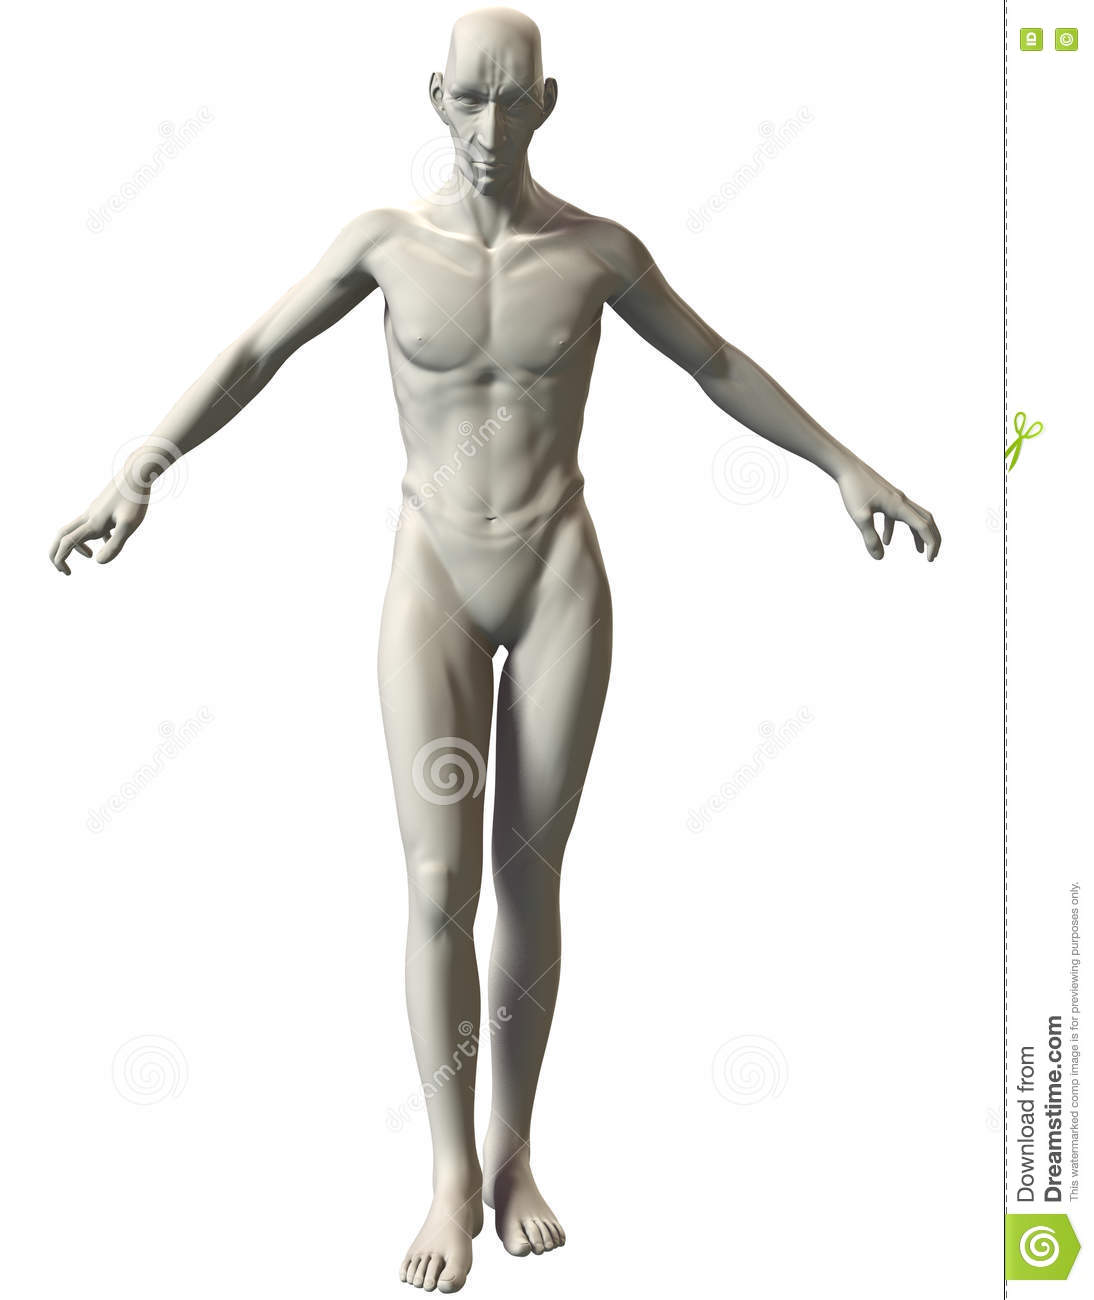 3D Villain Pose Reference Unlimited Power Stock Image